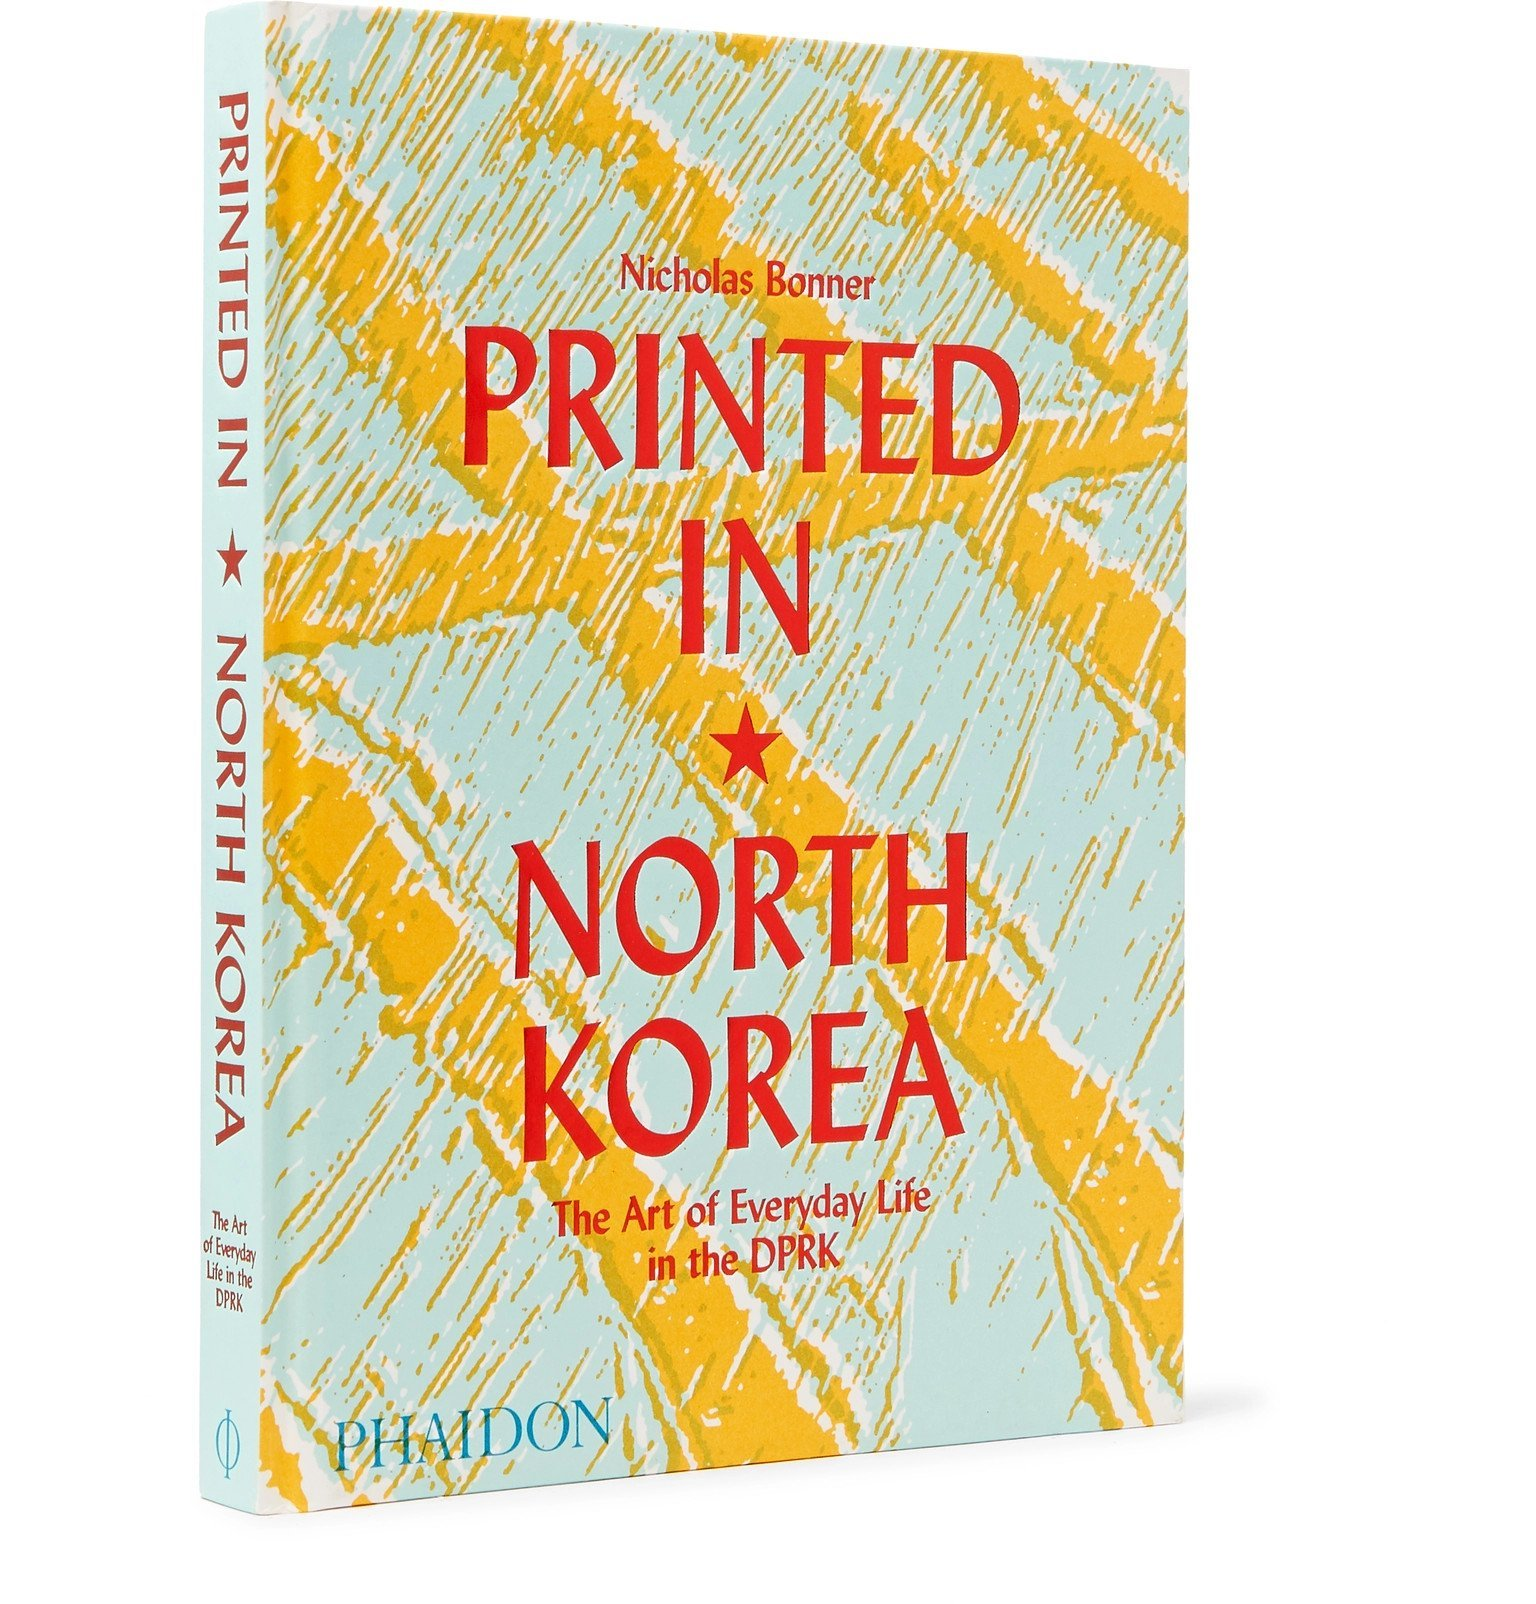 Photo: Phaidon - Printed in North Korea: The Art of Everyday Life in the DPRK Hardcover Book - Multi